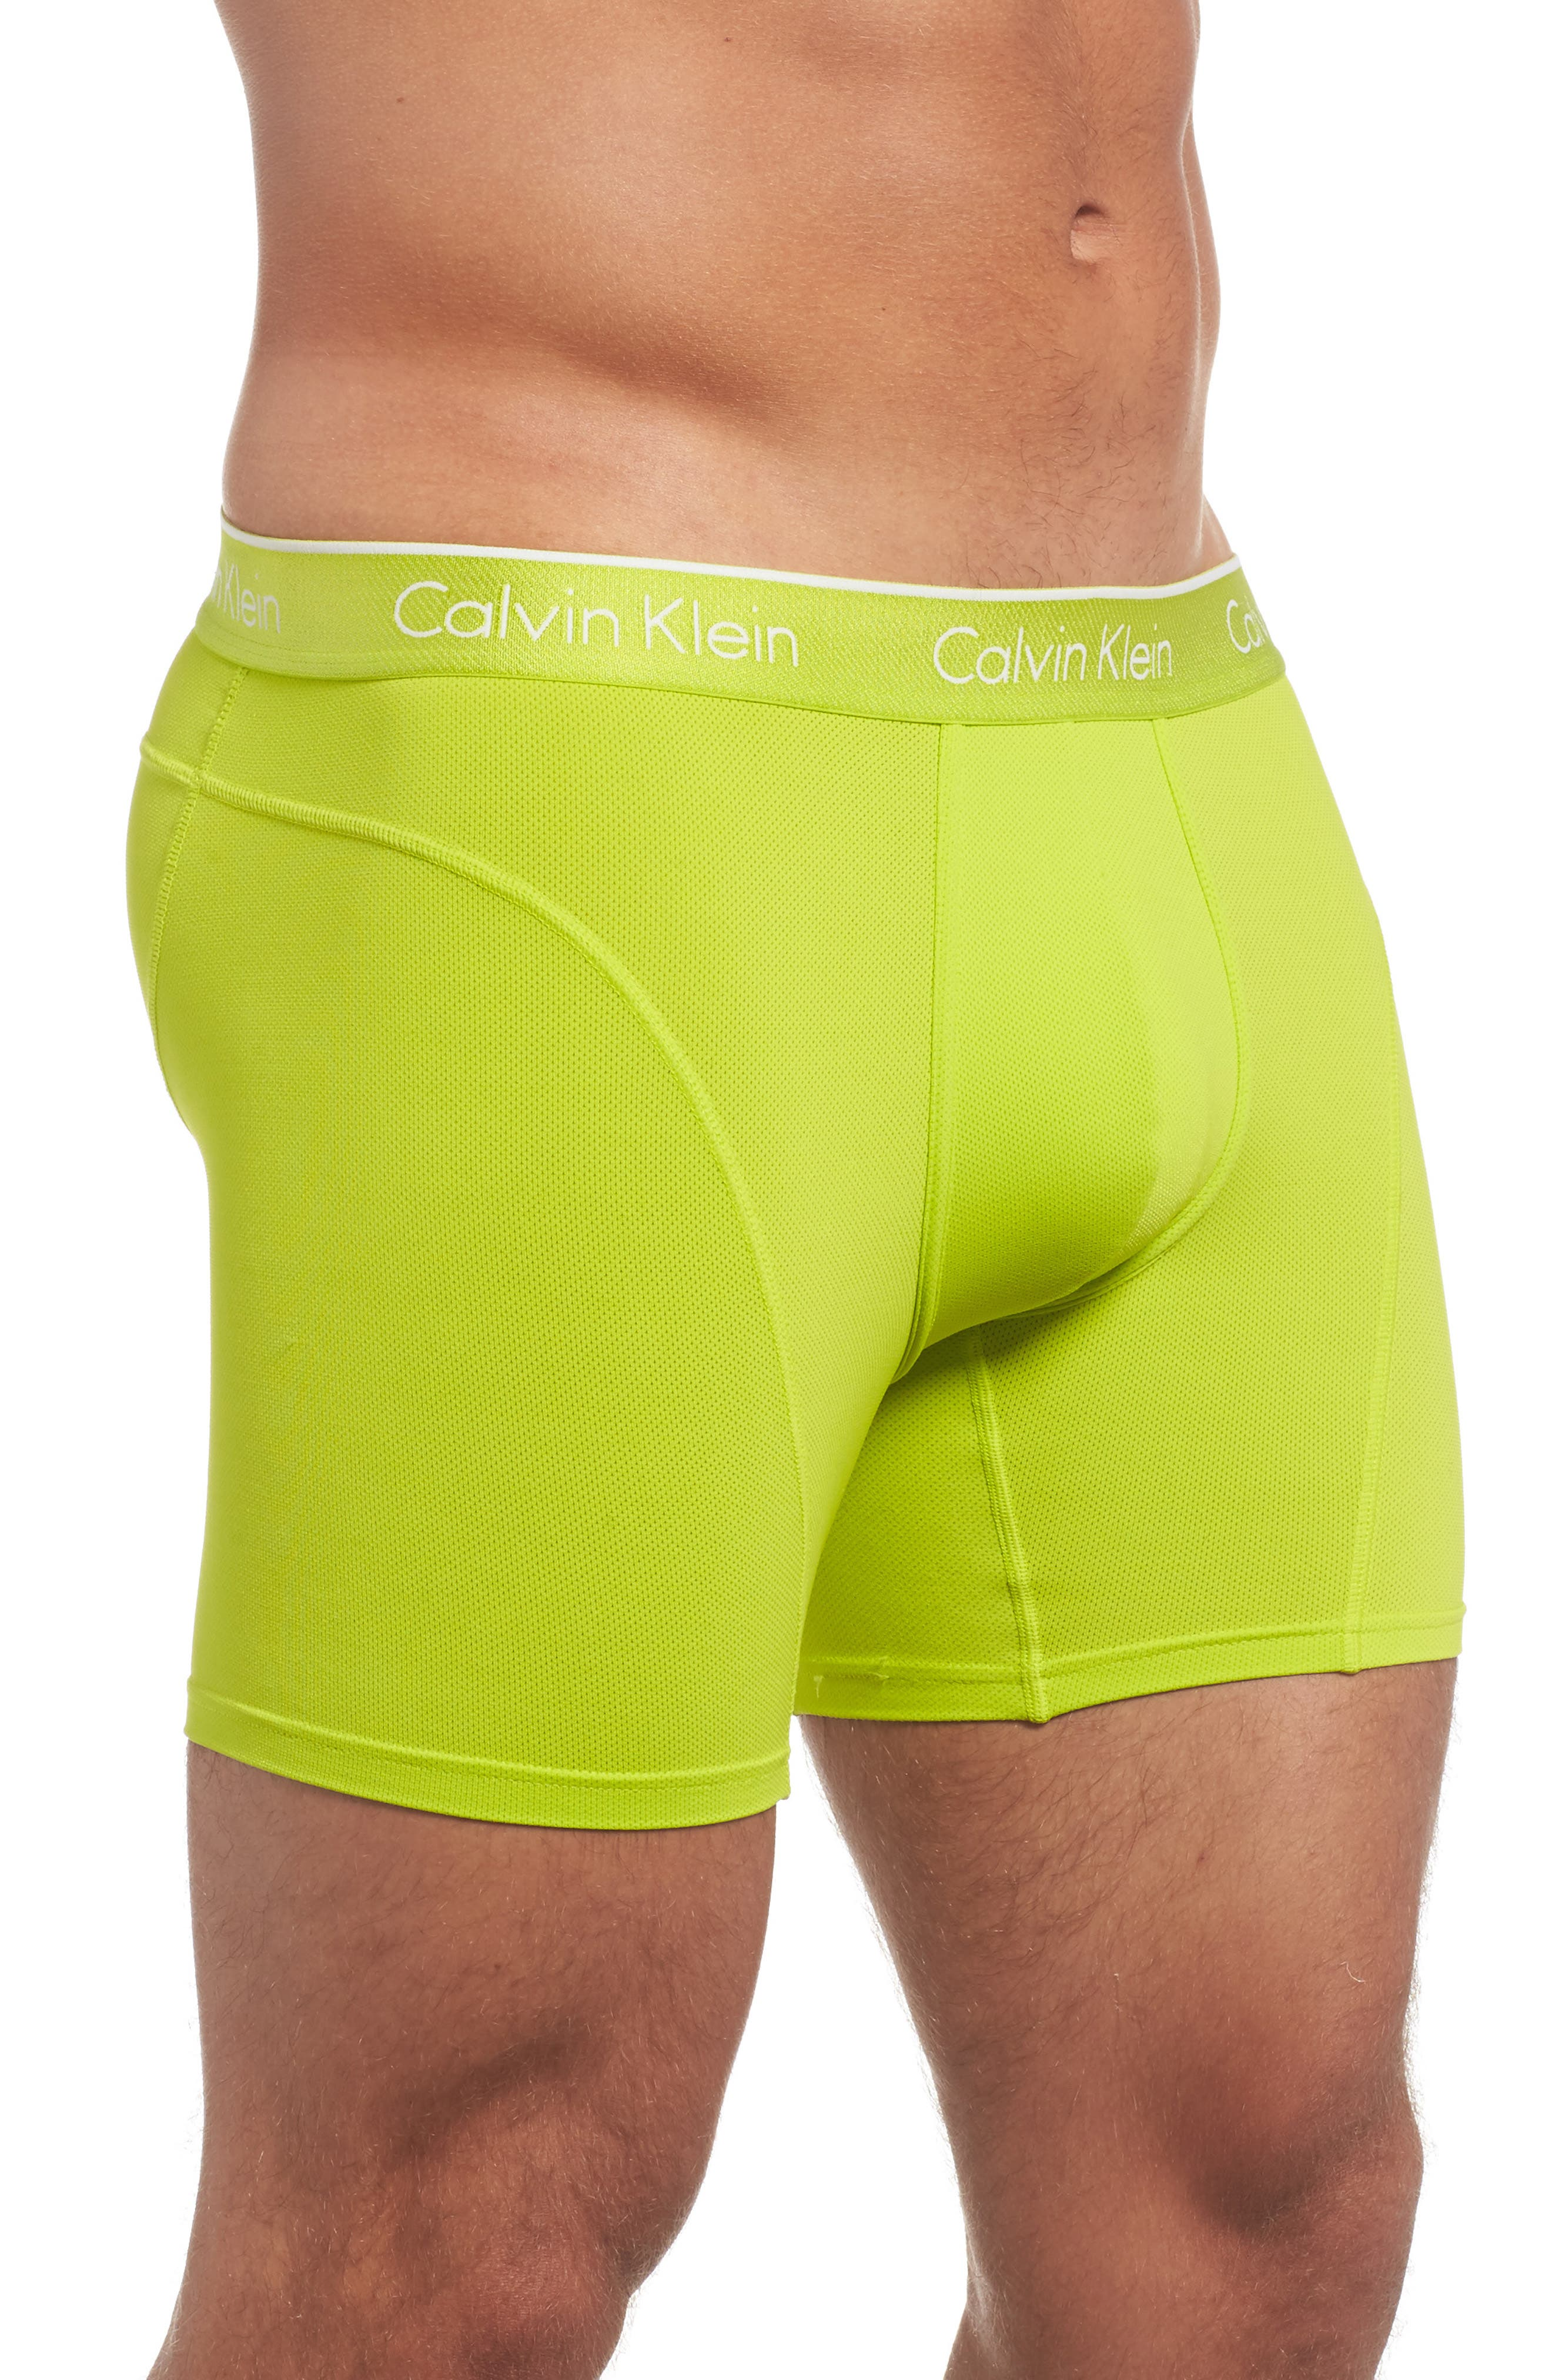 Air FX Low Rise Boxer Briefs,                             Alternate thumbnail 3, color,                             306